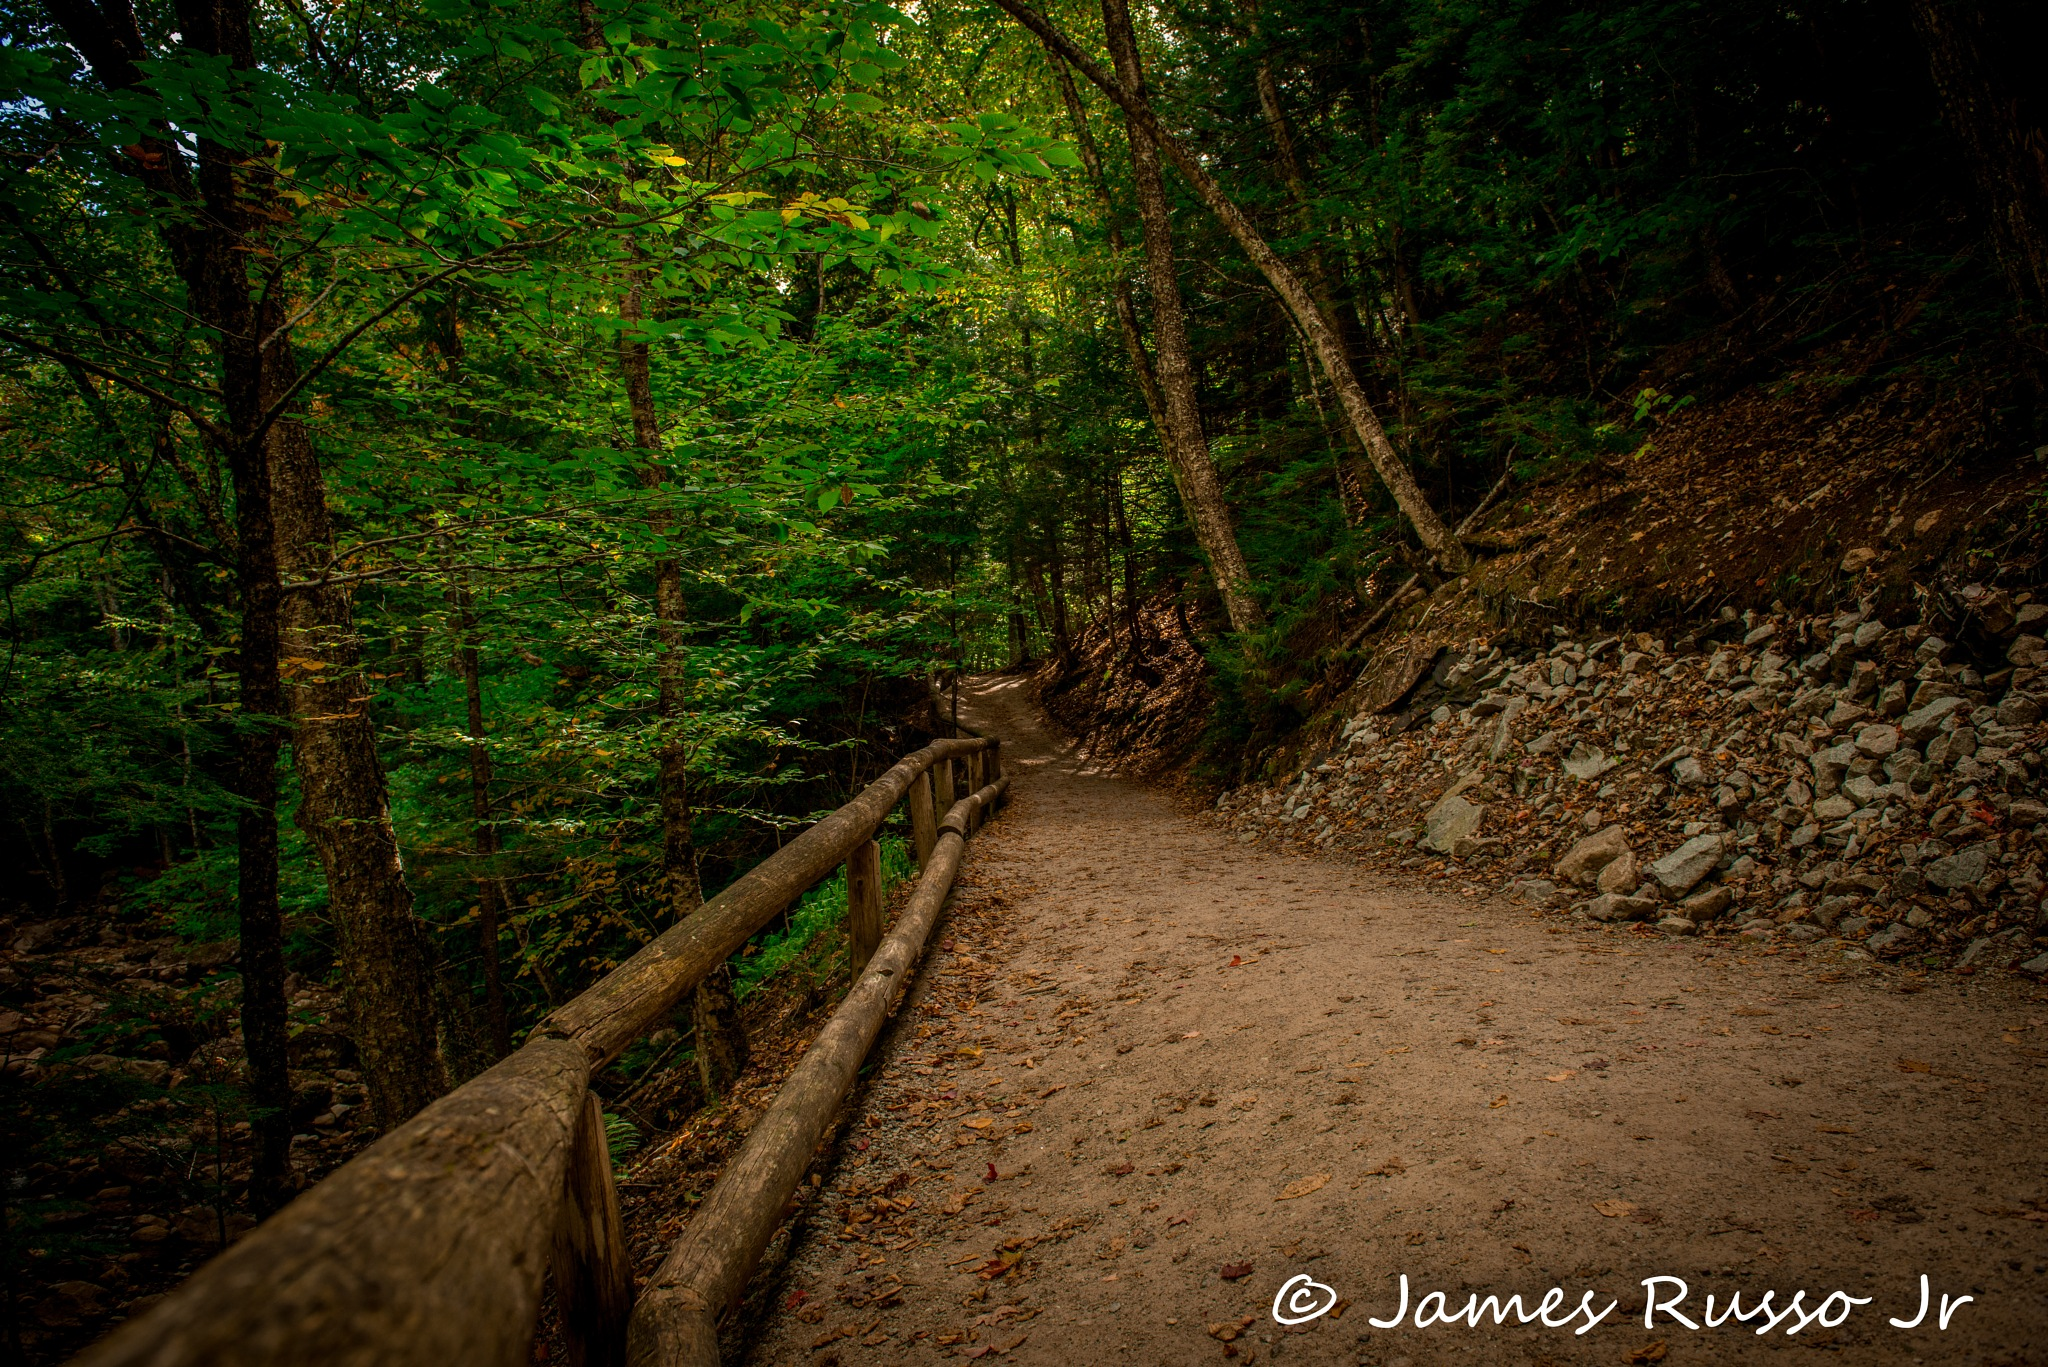 Path by James Russo